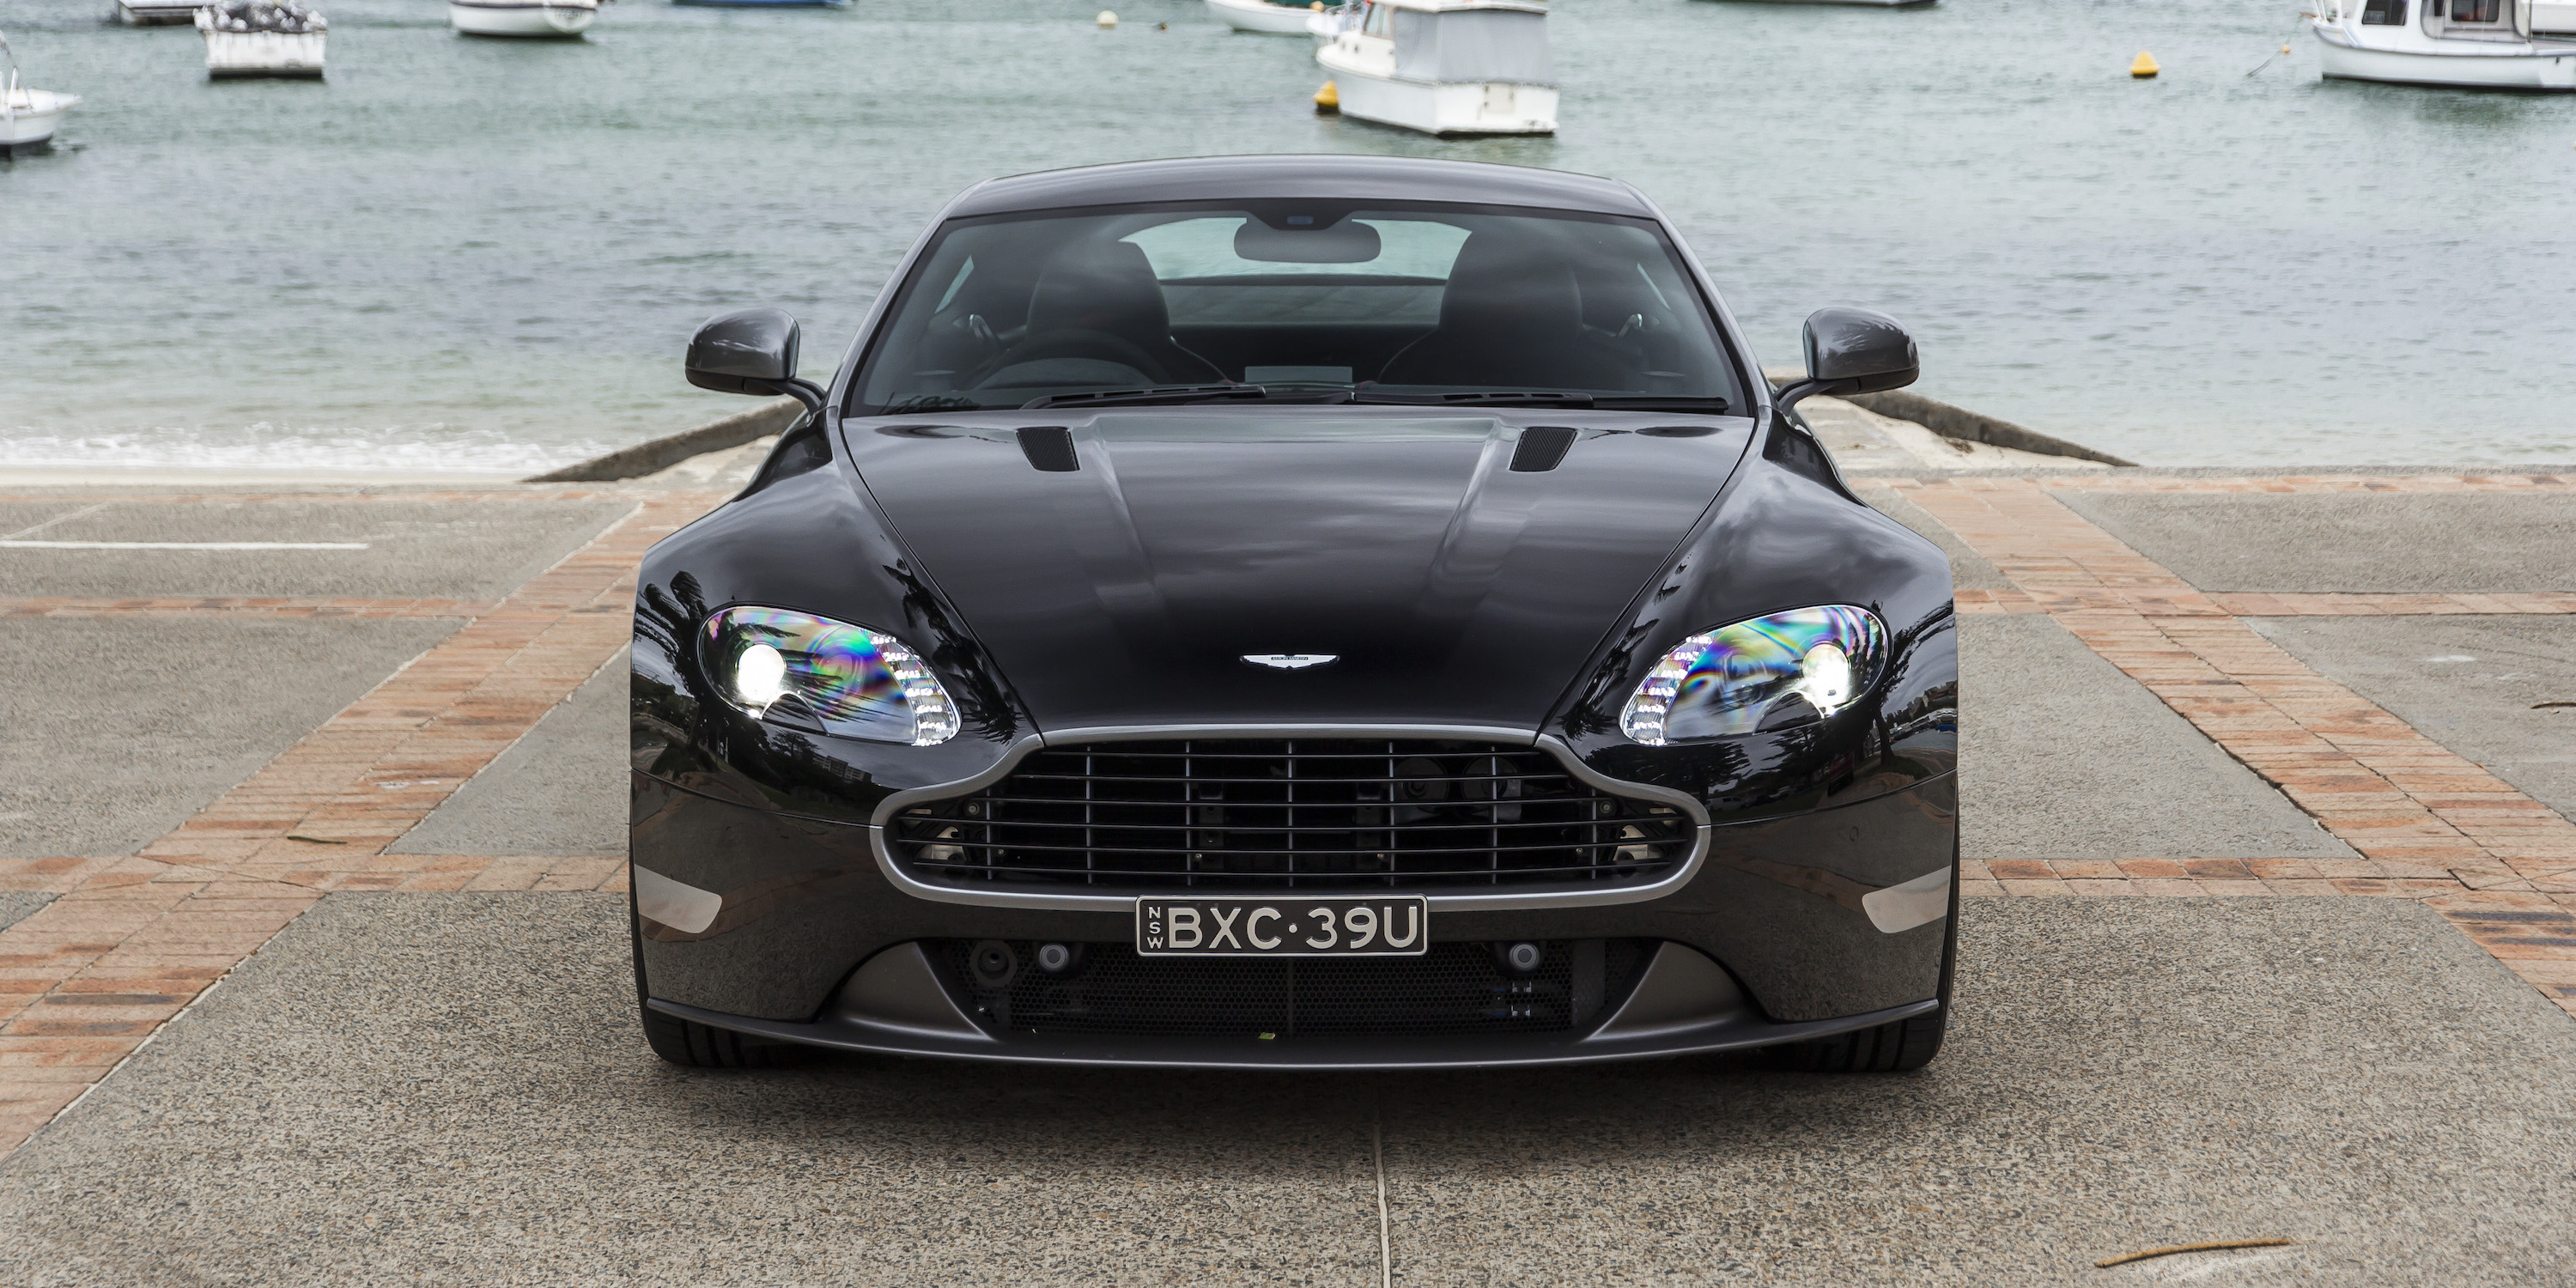 2016 Aston Martin Vantage Gt Front End (View 21 of 25)